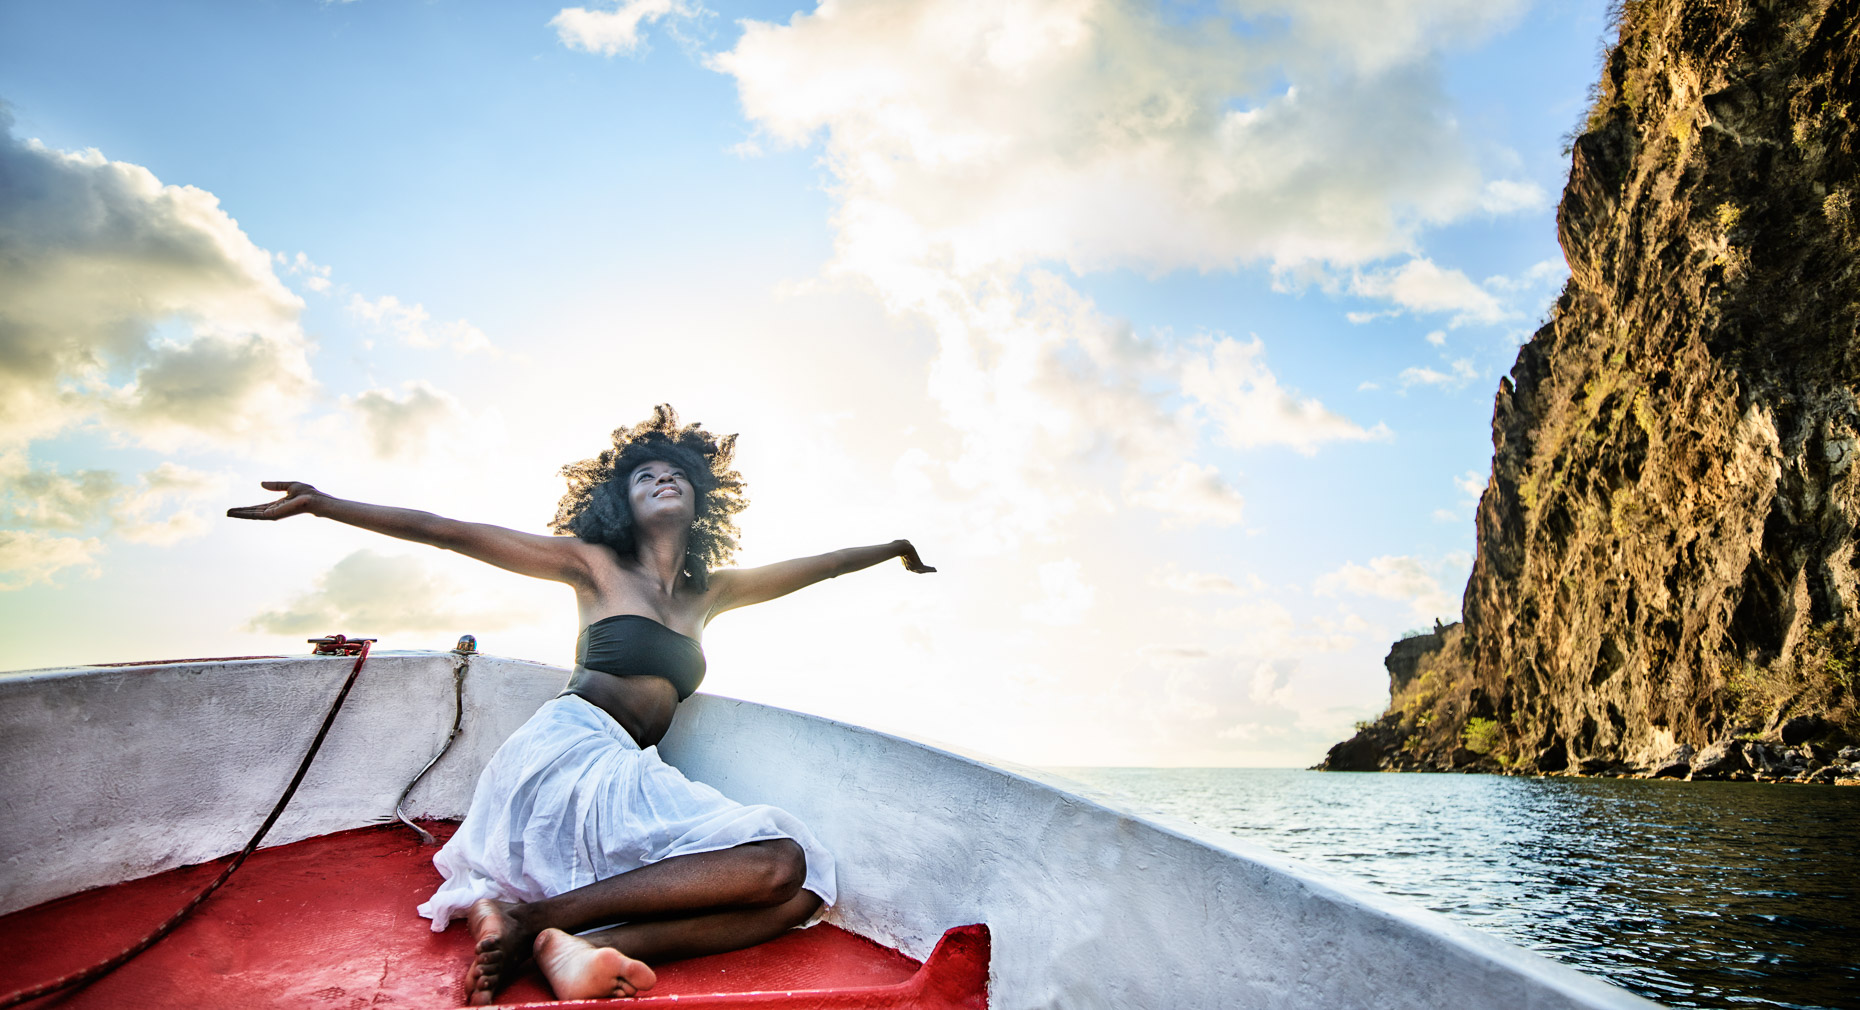 Kevin Steele - woman spreads her arms in joy on a boat